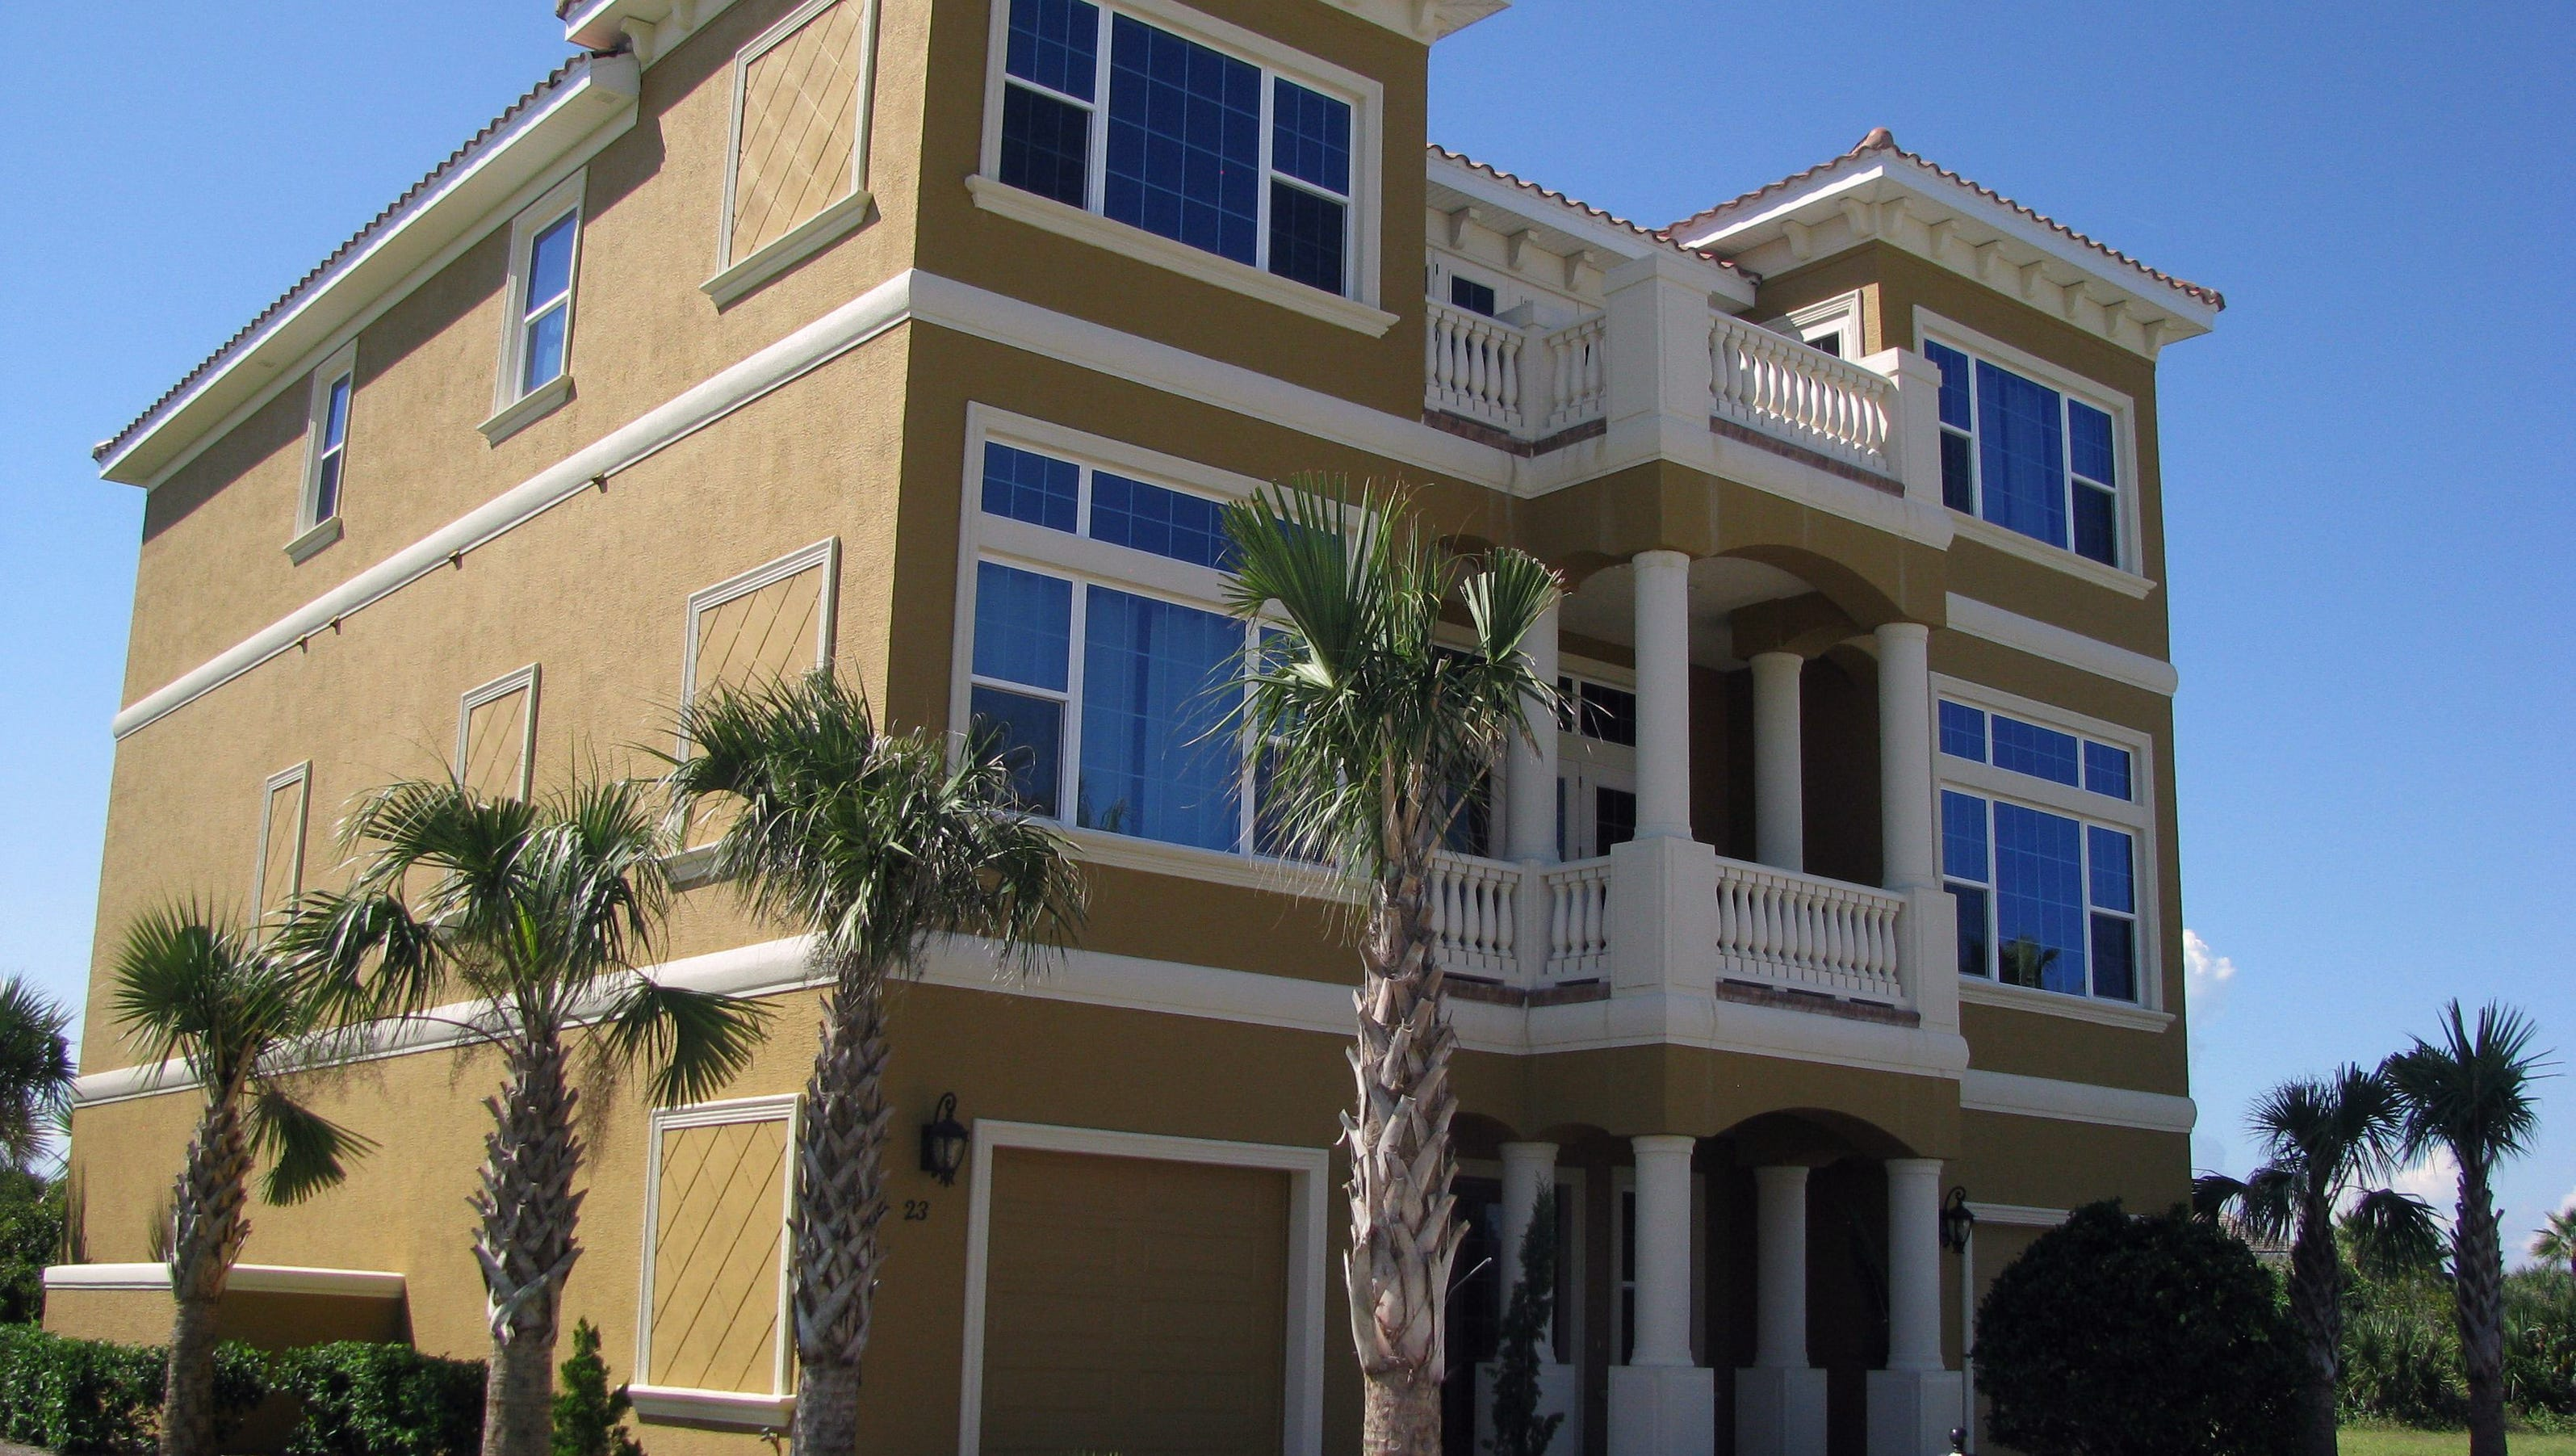 680k vacation home built on wrong florida lot for Build house on your land